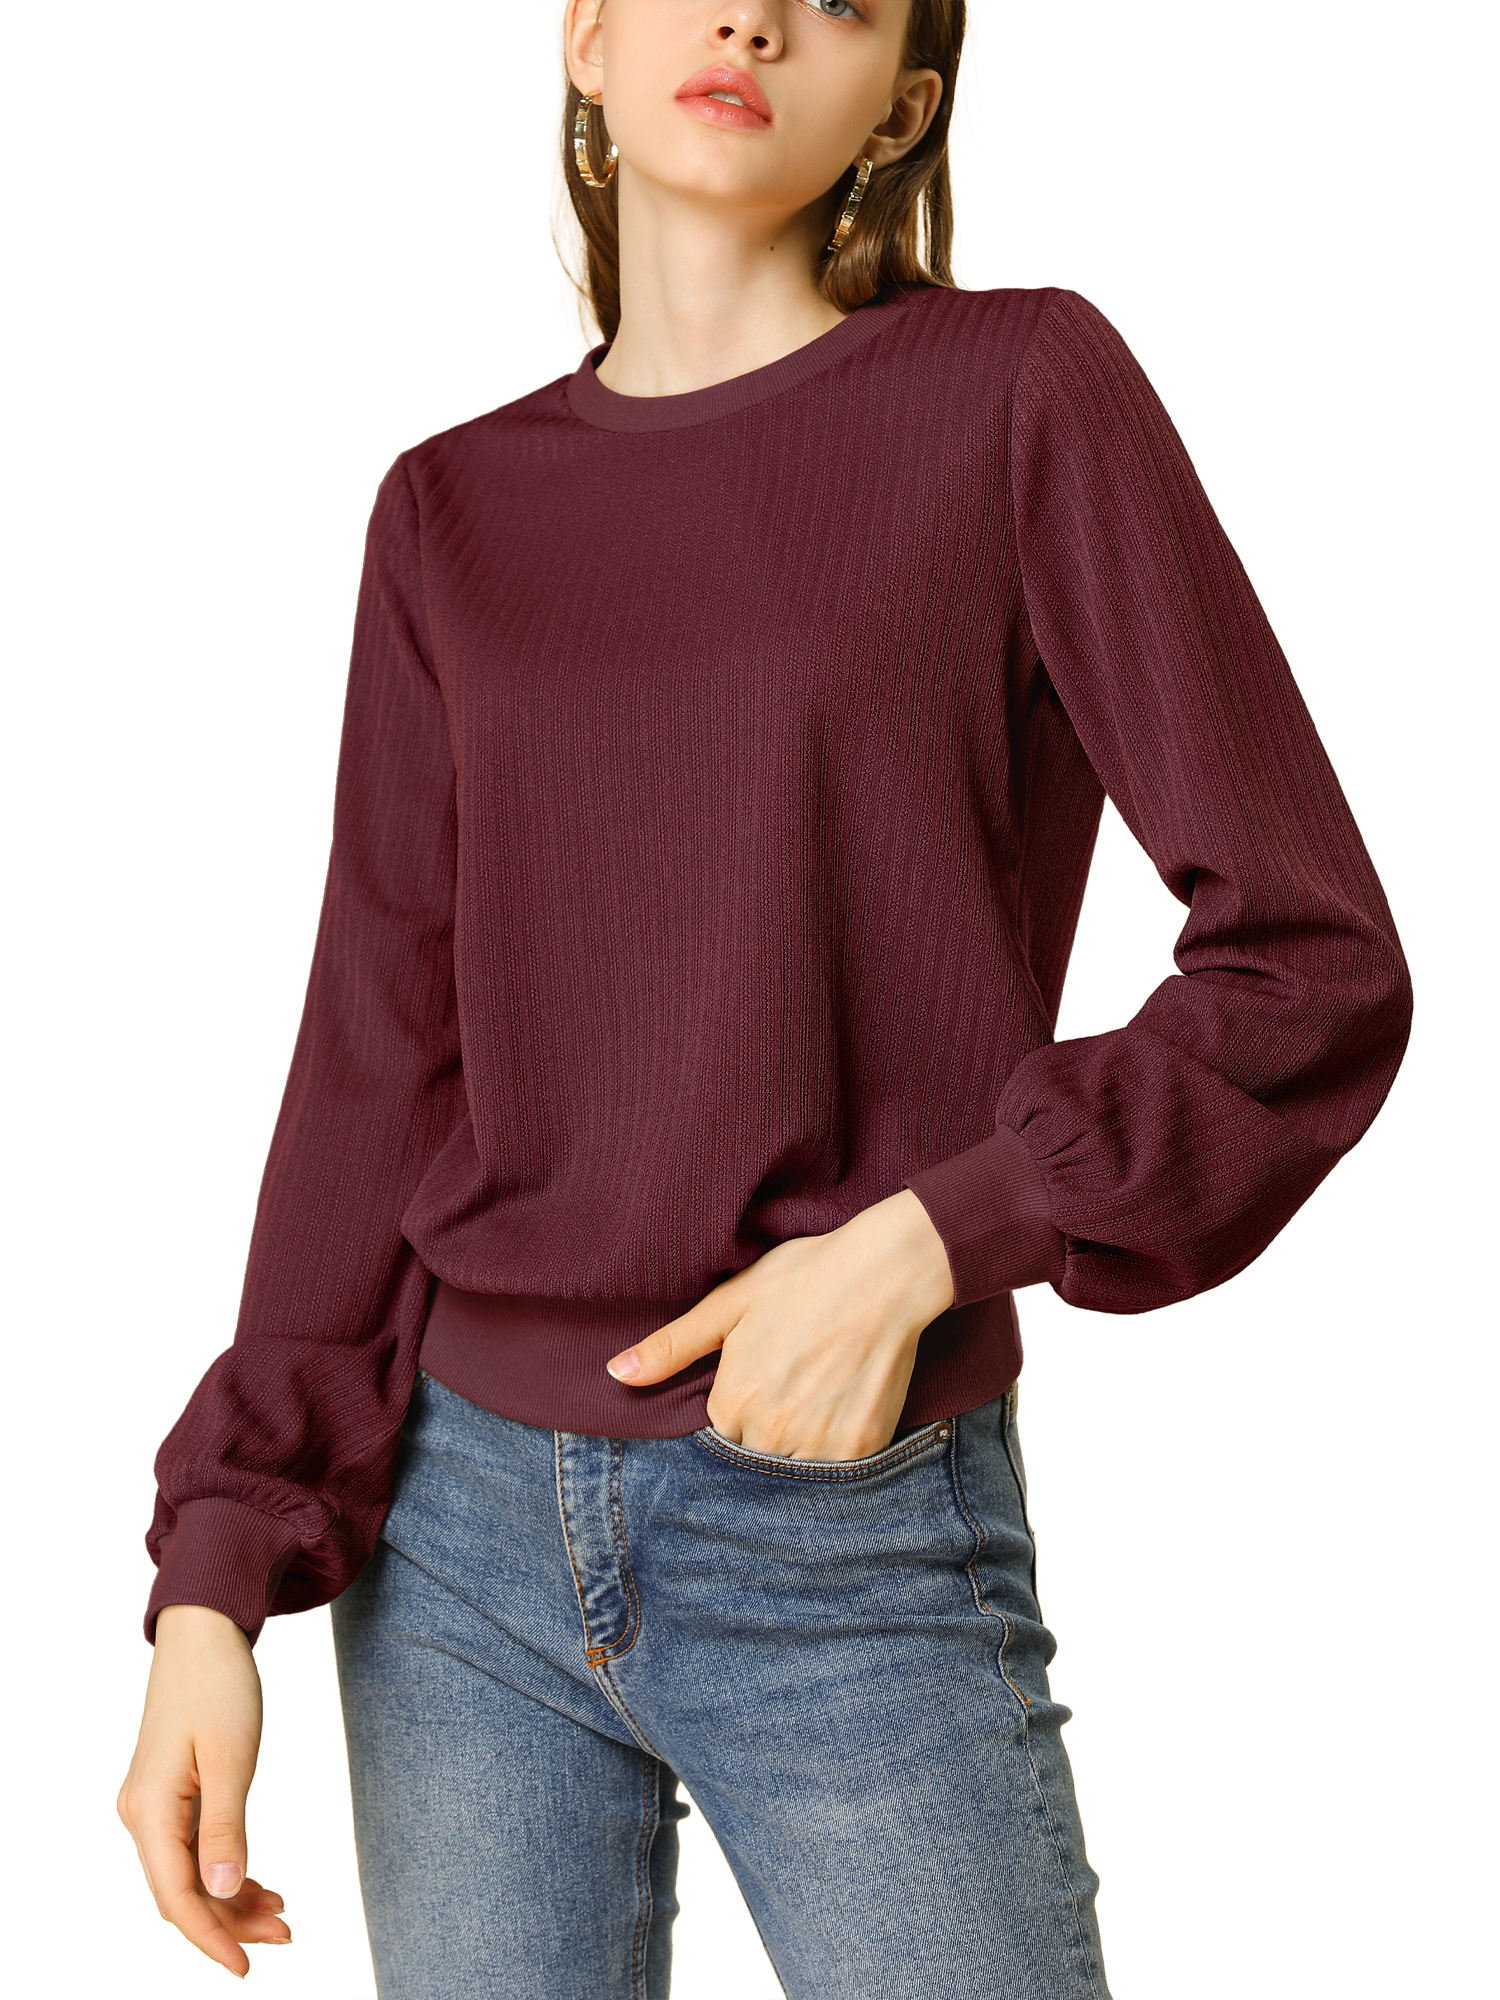 Allegra K Women's Lantern Sleeves Blouson Ribbed Top Sweater Burgundy M